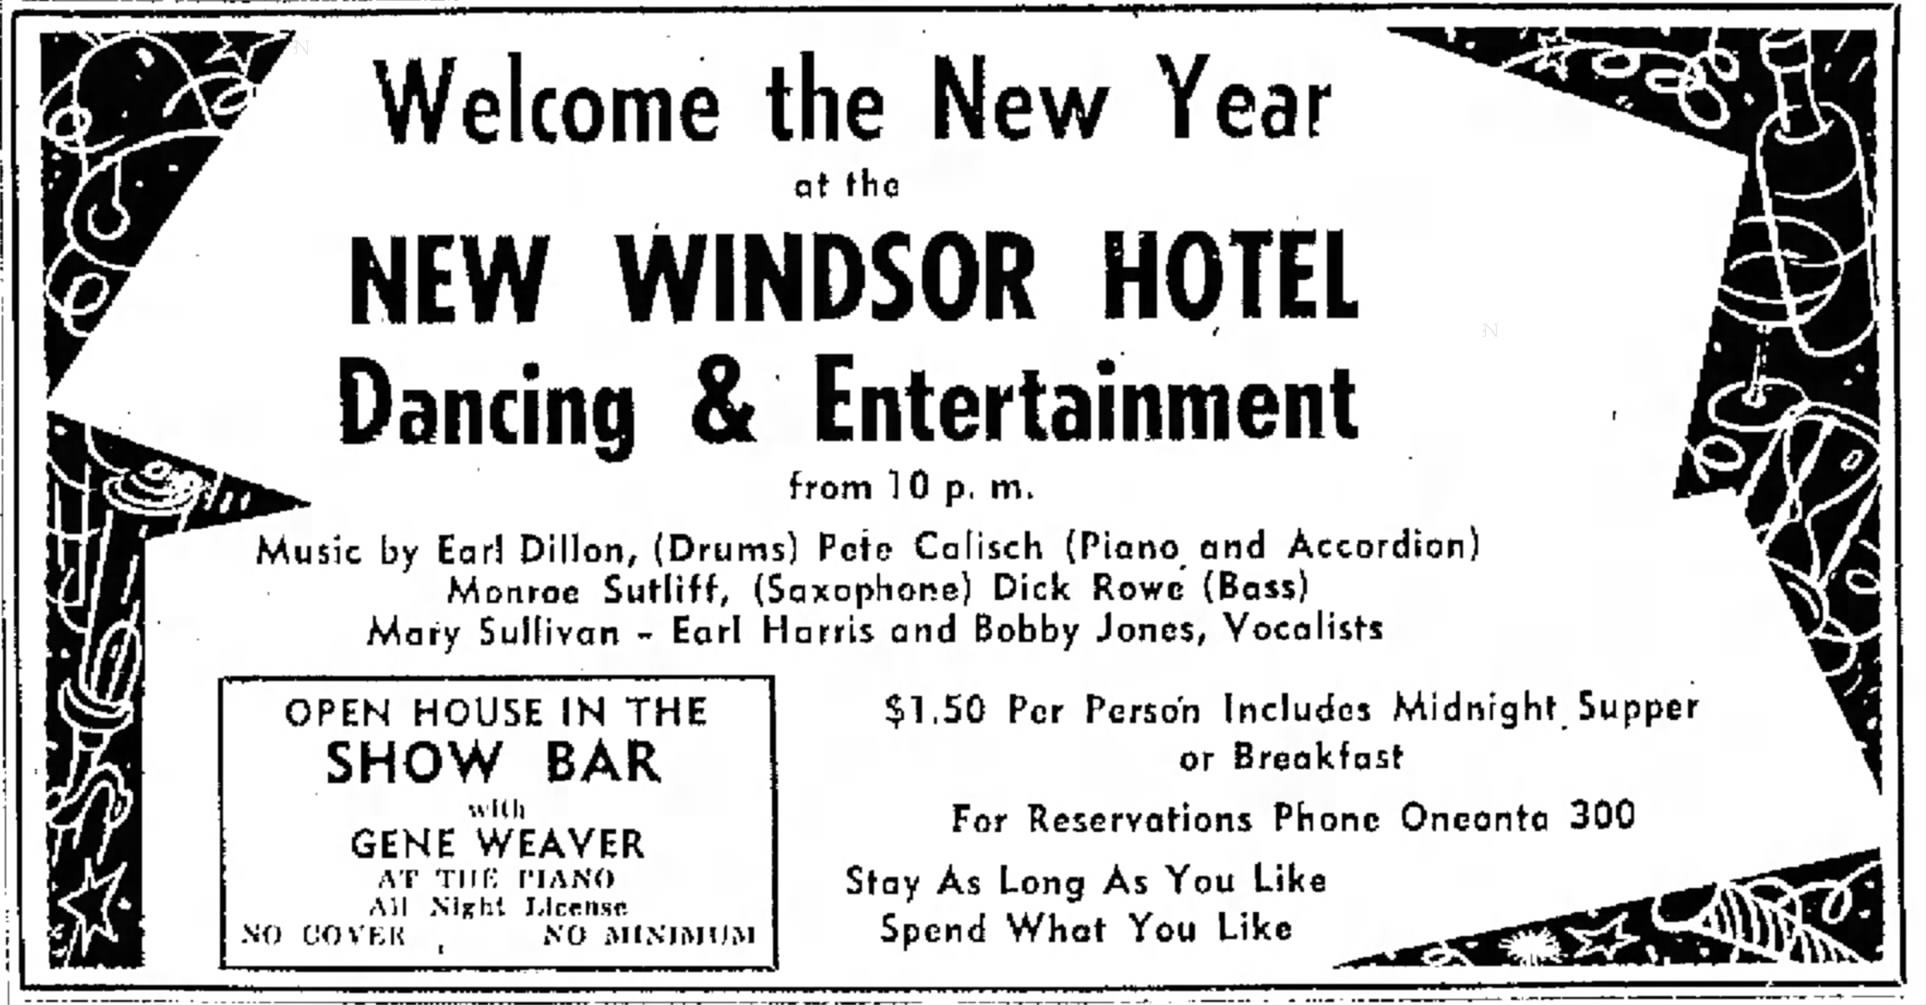 New Year's Eve at the New Windsor Hotel 1953